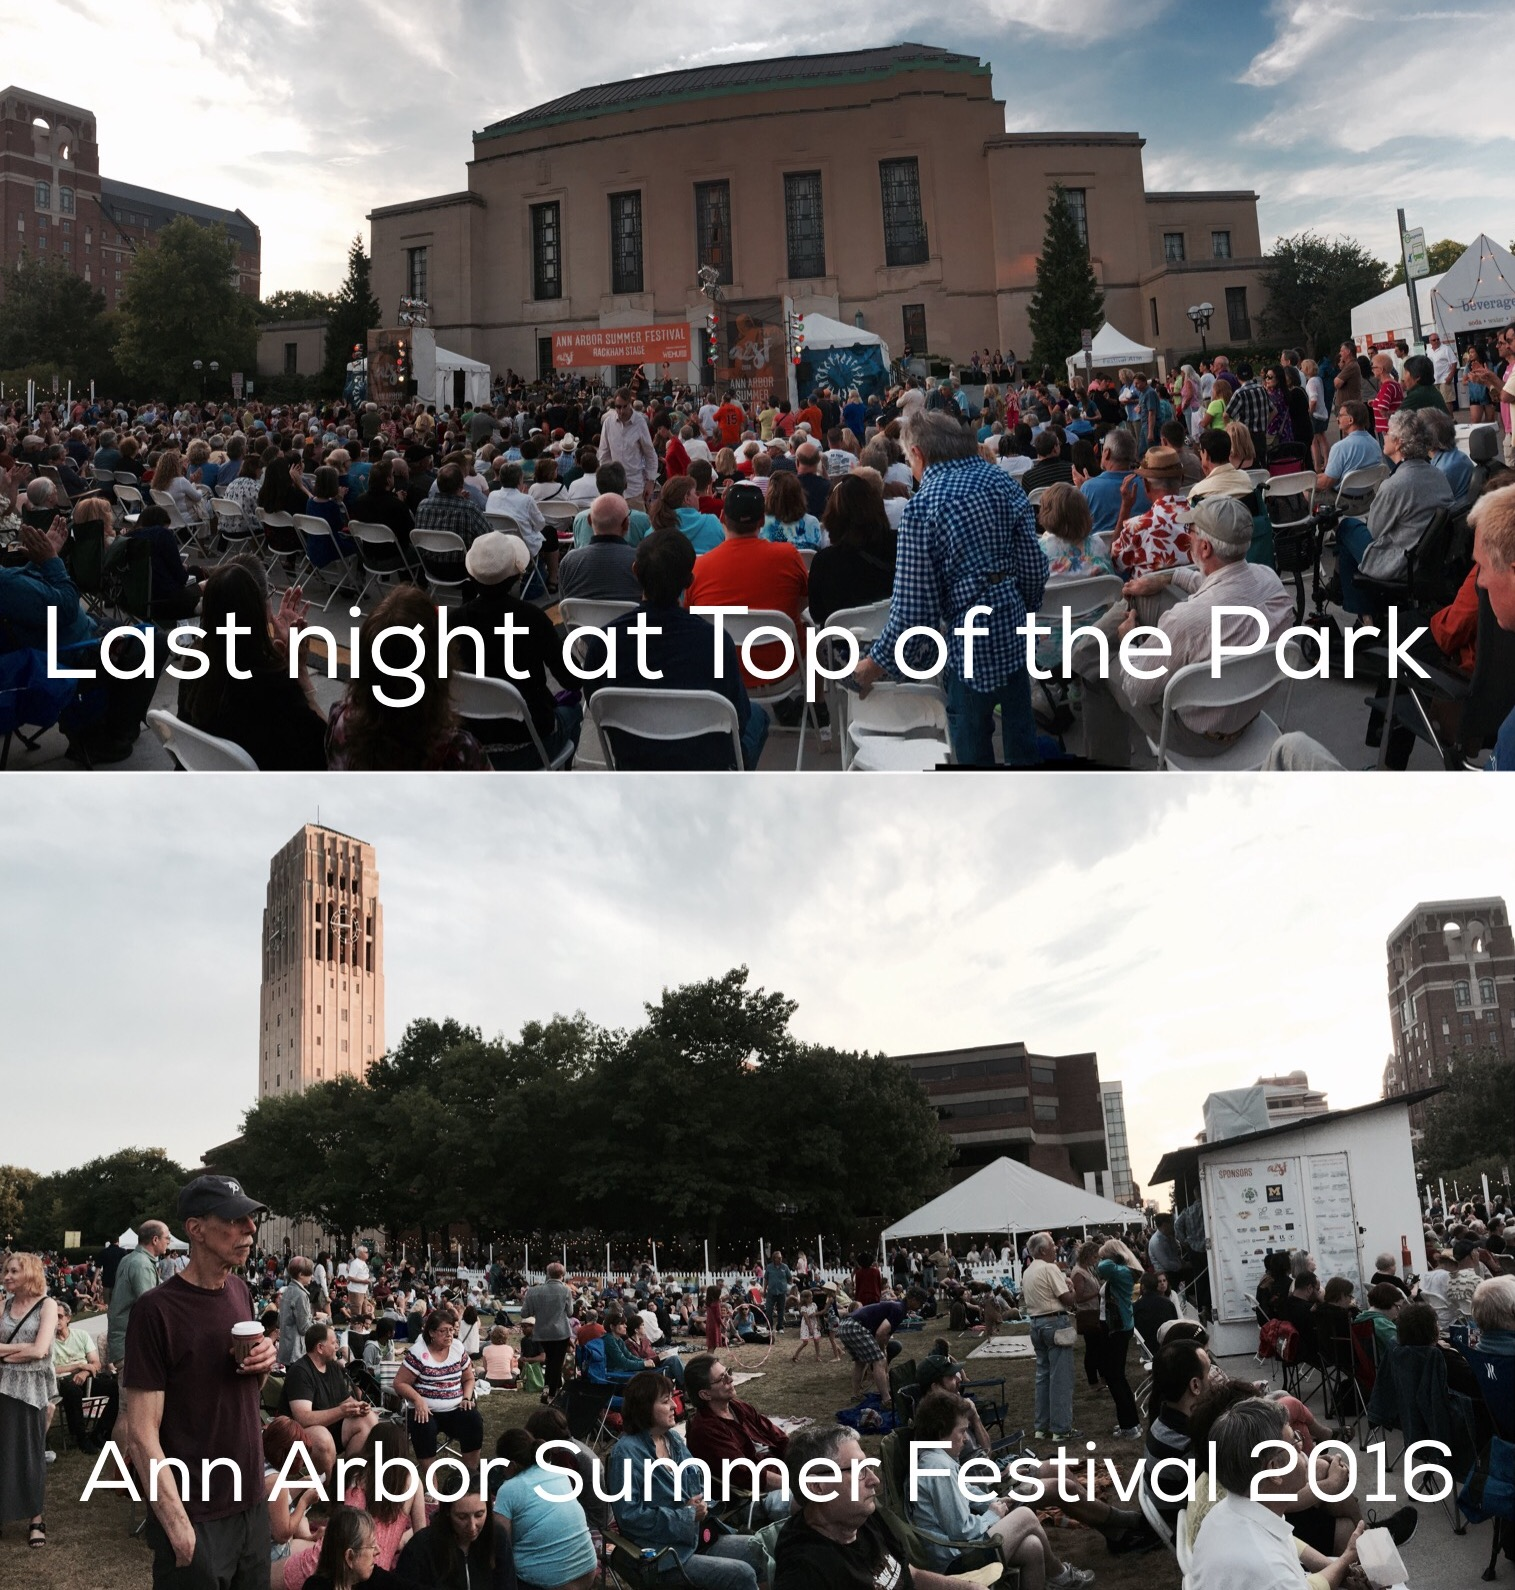 Top of the Park Wraps Up - Ann Arbor Summer Festival 2016